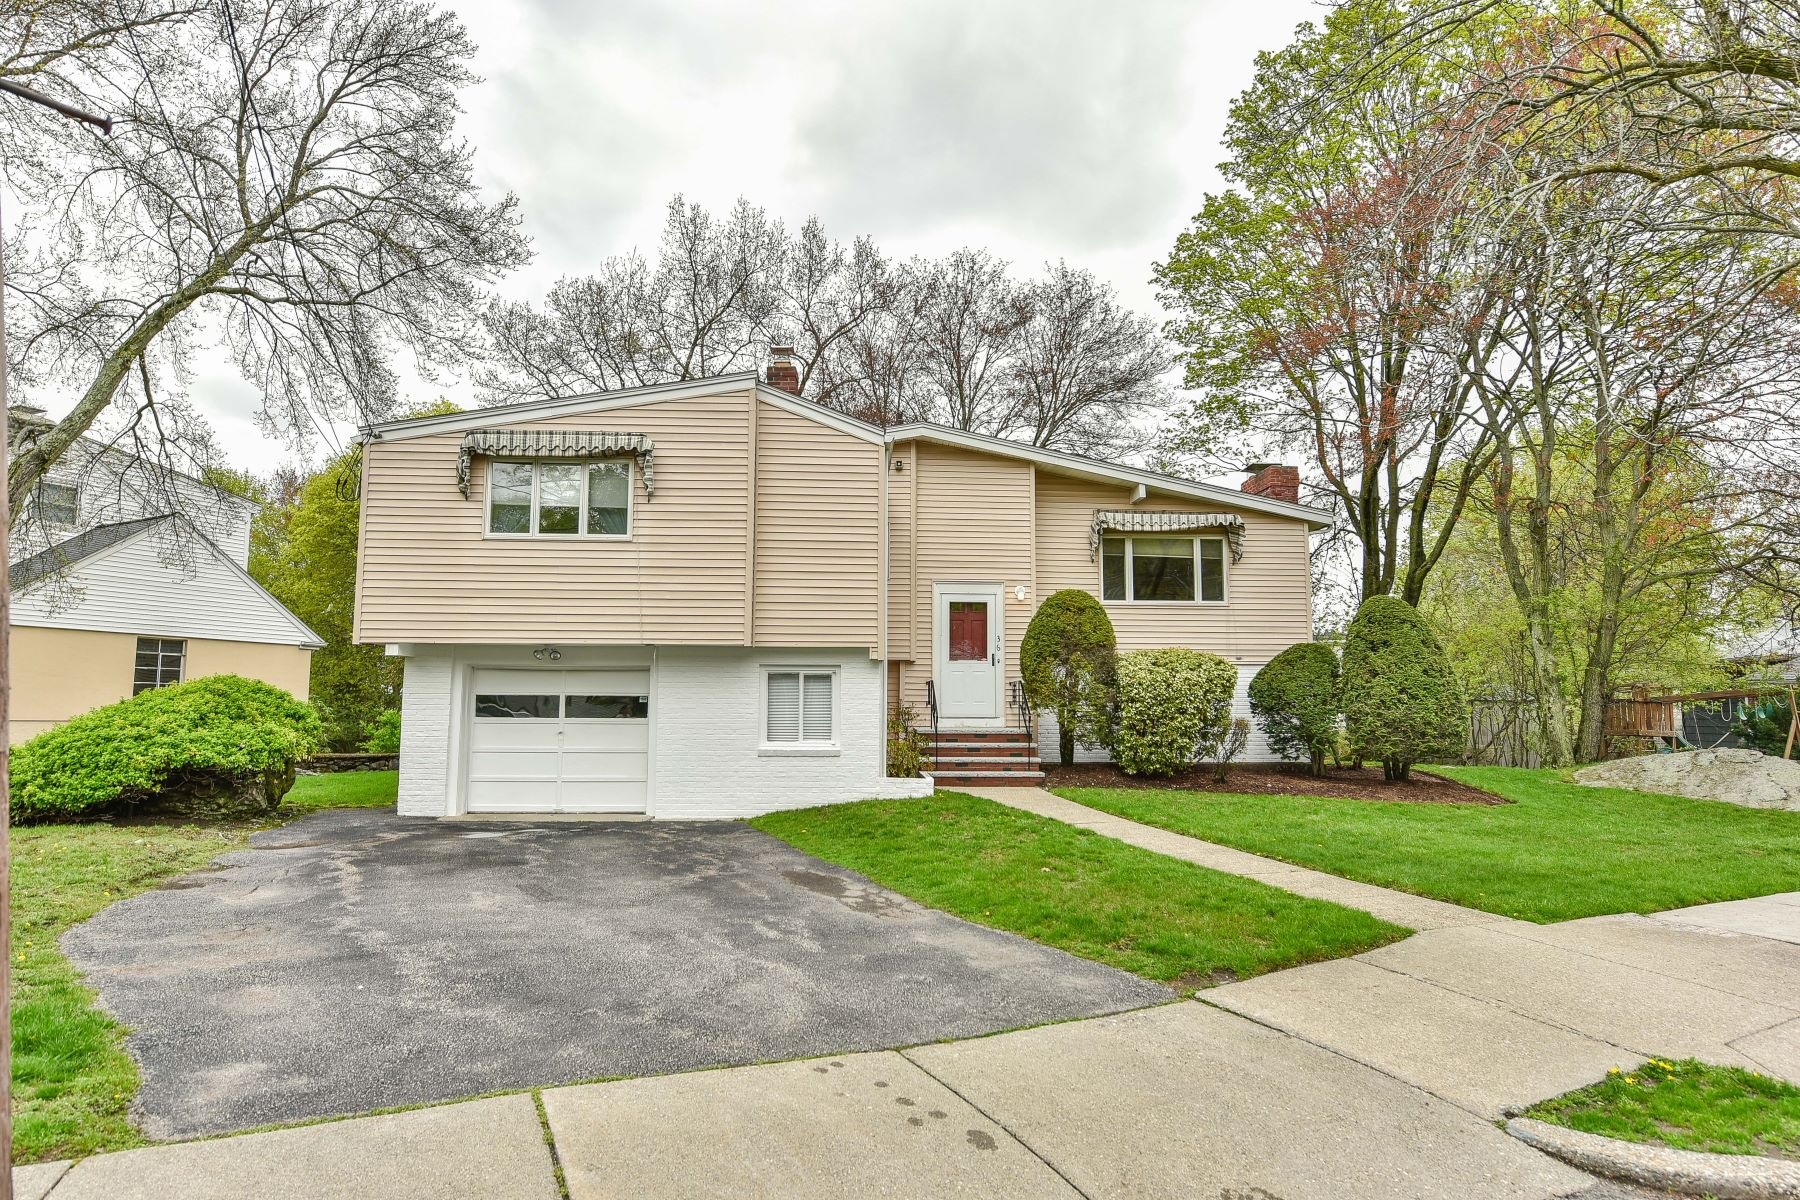 Single Family Home for Sale at 36 Theodore Rd, Newton 36 Theodore Rd Newton, Massachusetts 02459 United States